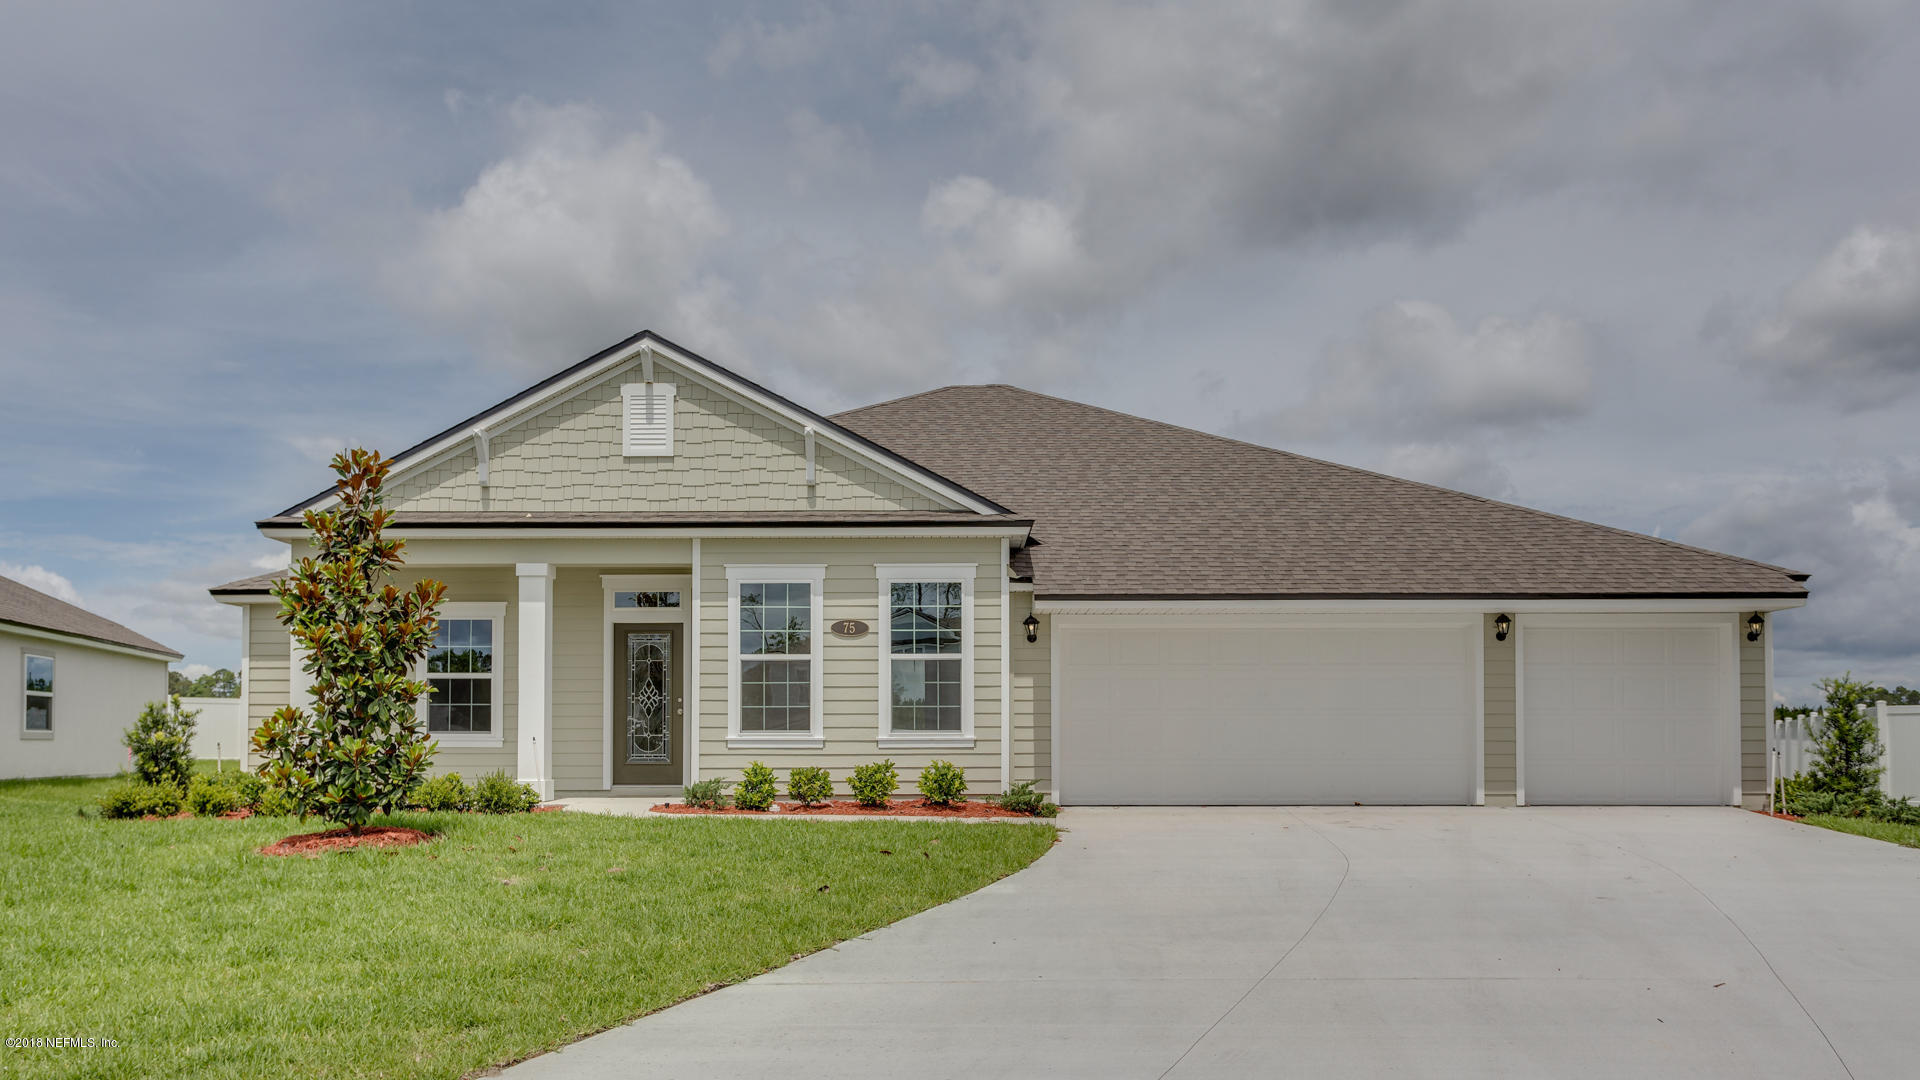 75 SOTO, ST AUGUSTINE, FLORIDA 32086, 3 Bedrooms Bedrooms, ,2 BathroomsBathrooms,Residential - single family,For sale,SOTO,912657